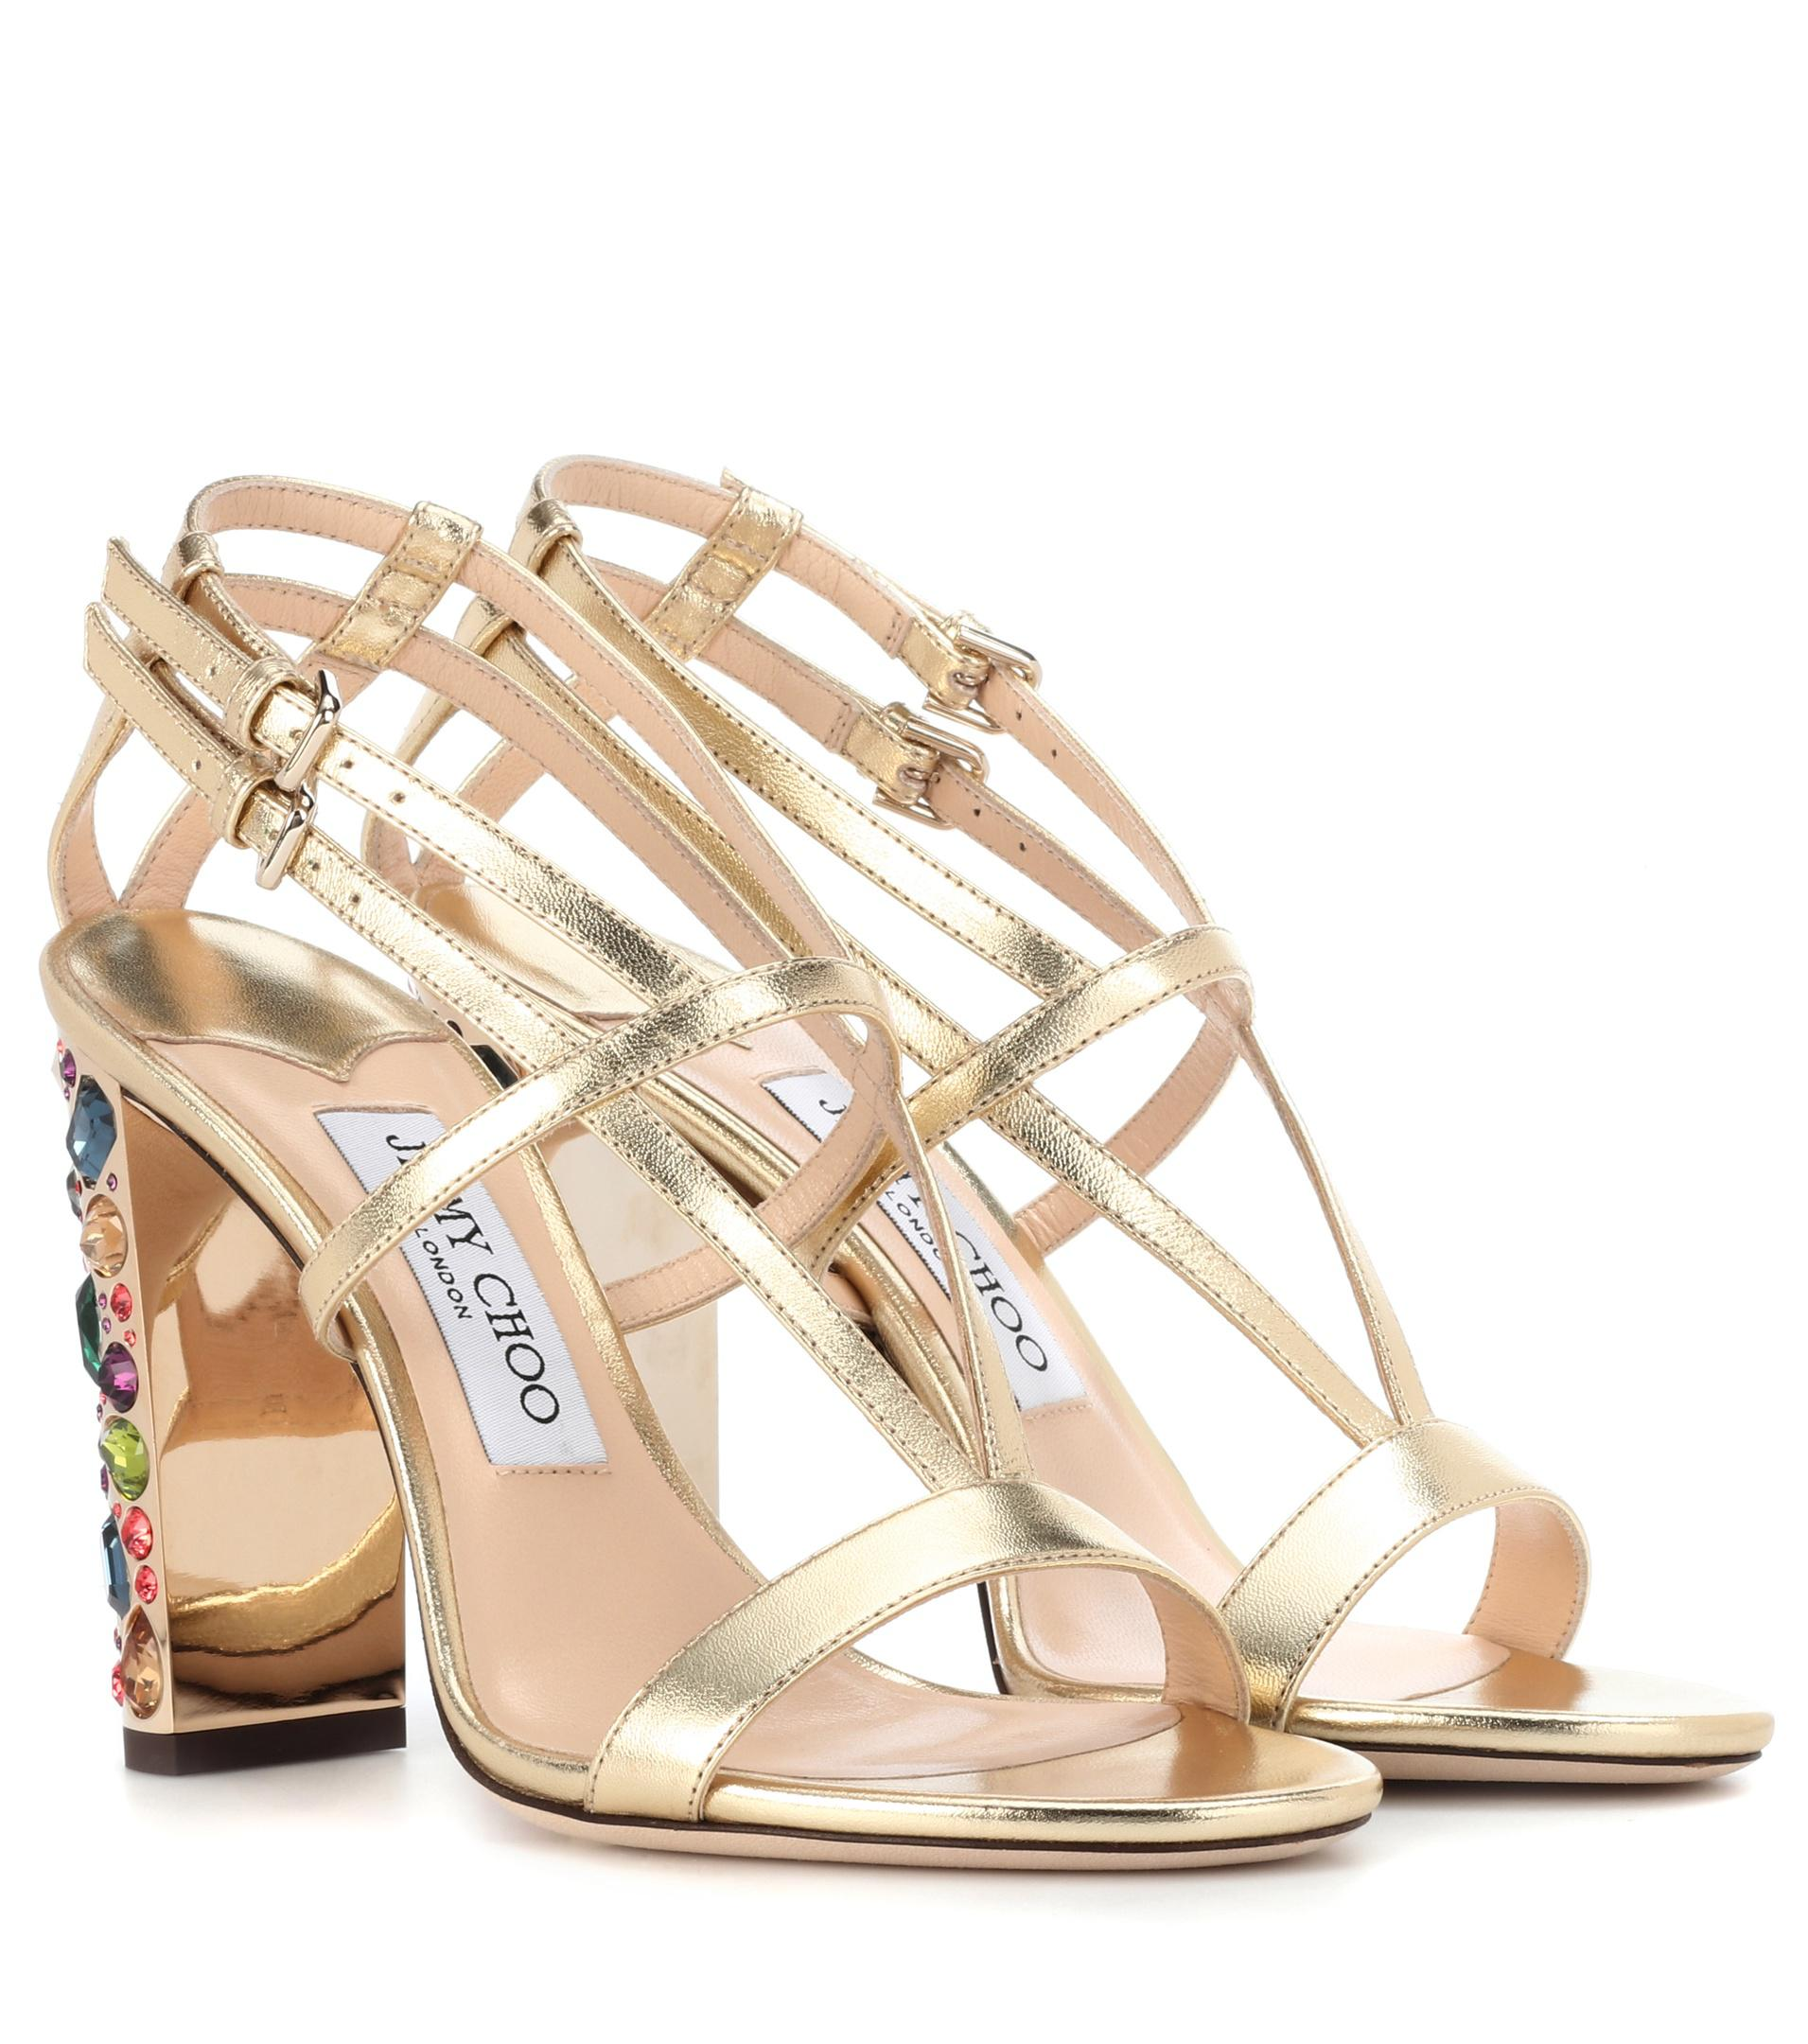 Jimmy choo Maeve 100 sandals